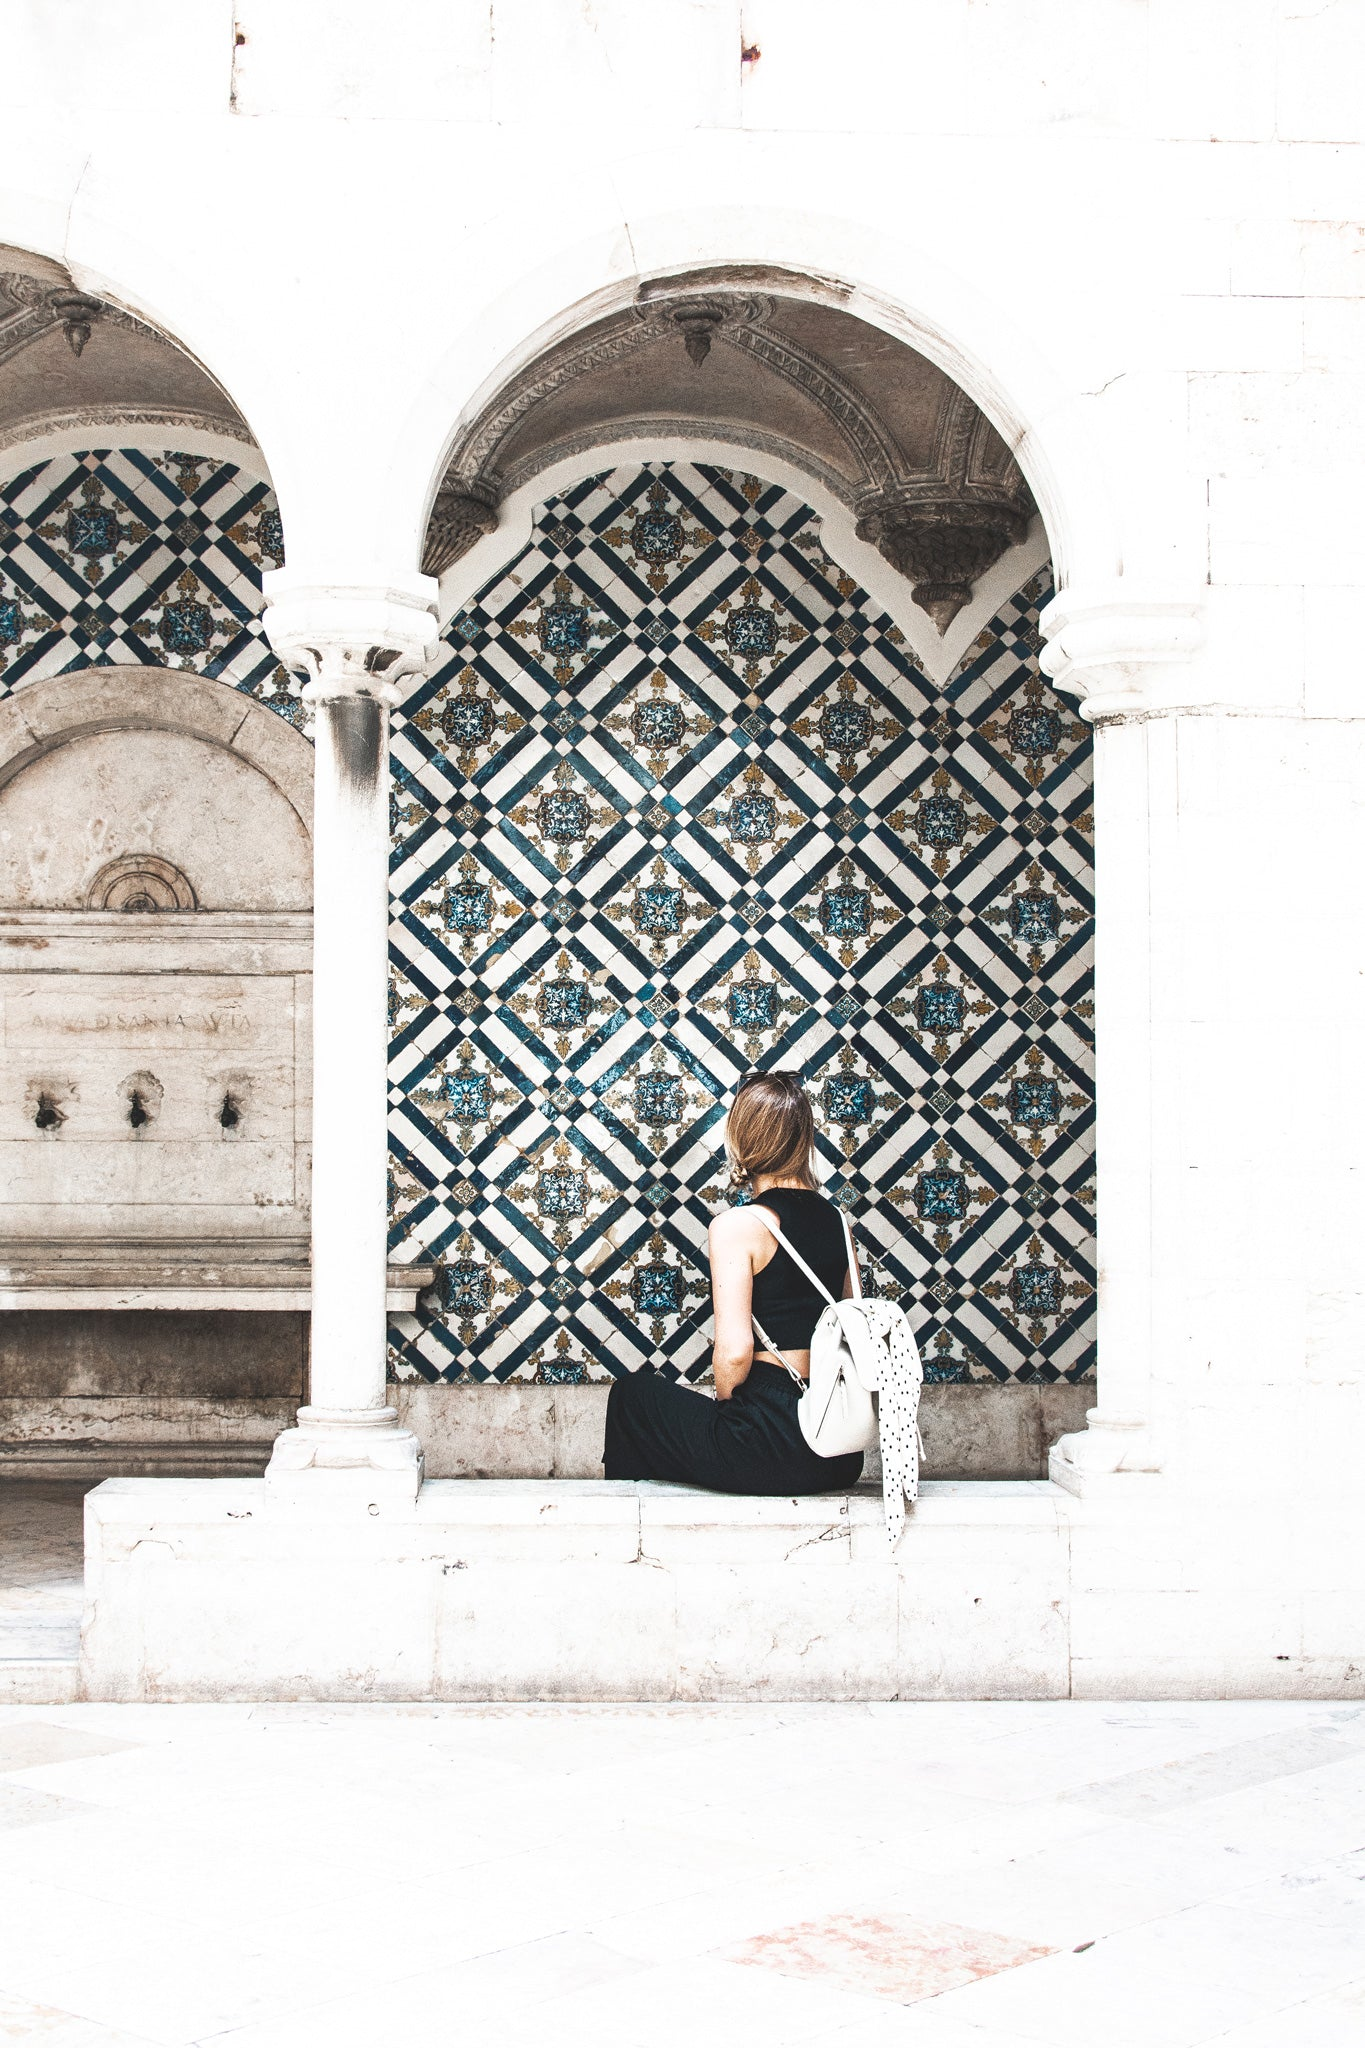 Most Instagrammable spots in Lisbon, Lisbon National Tile Museum